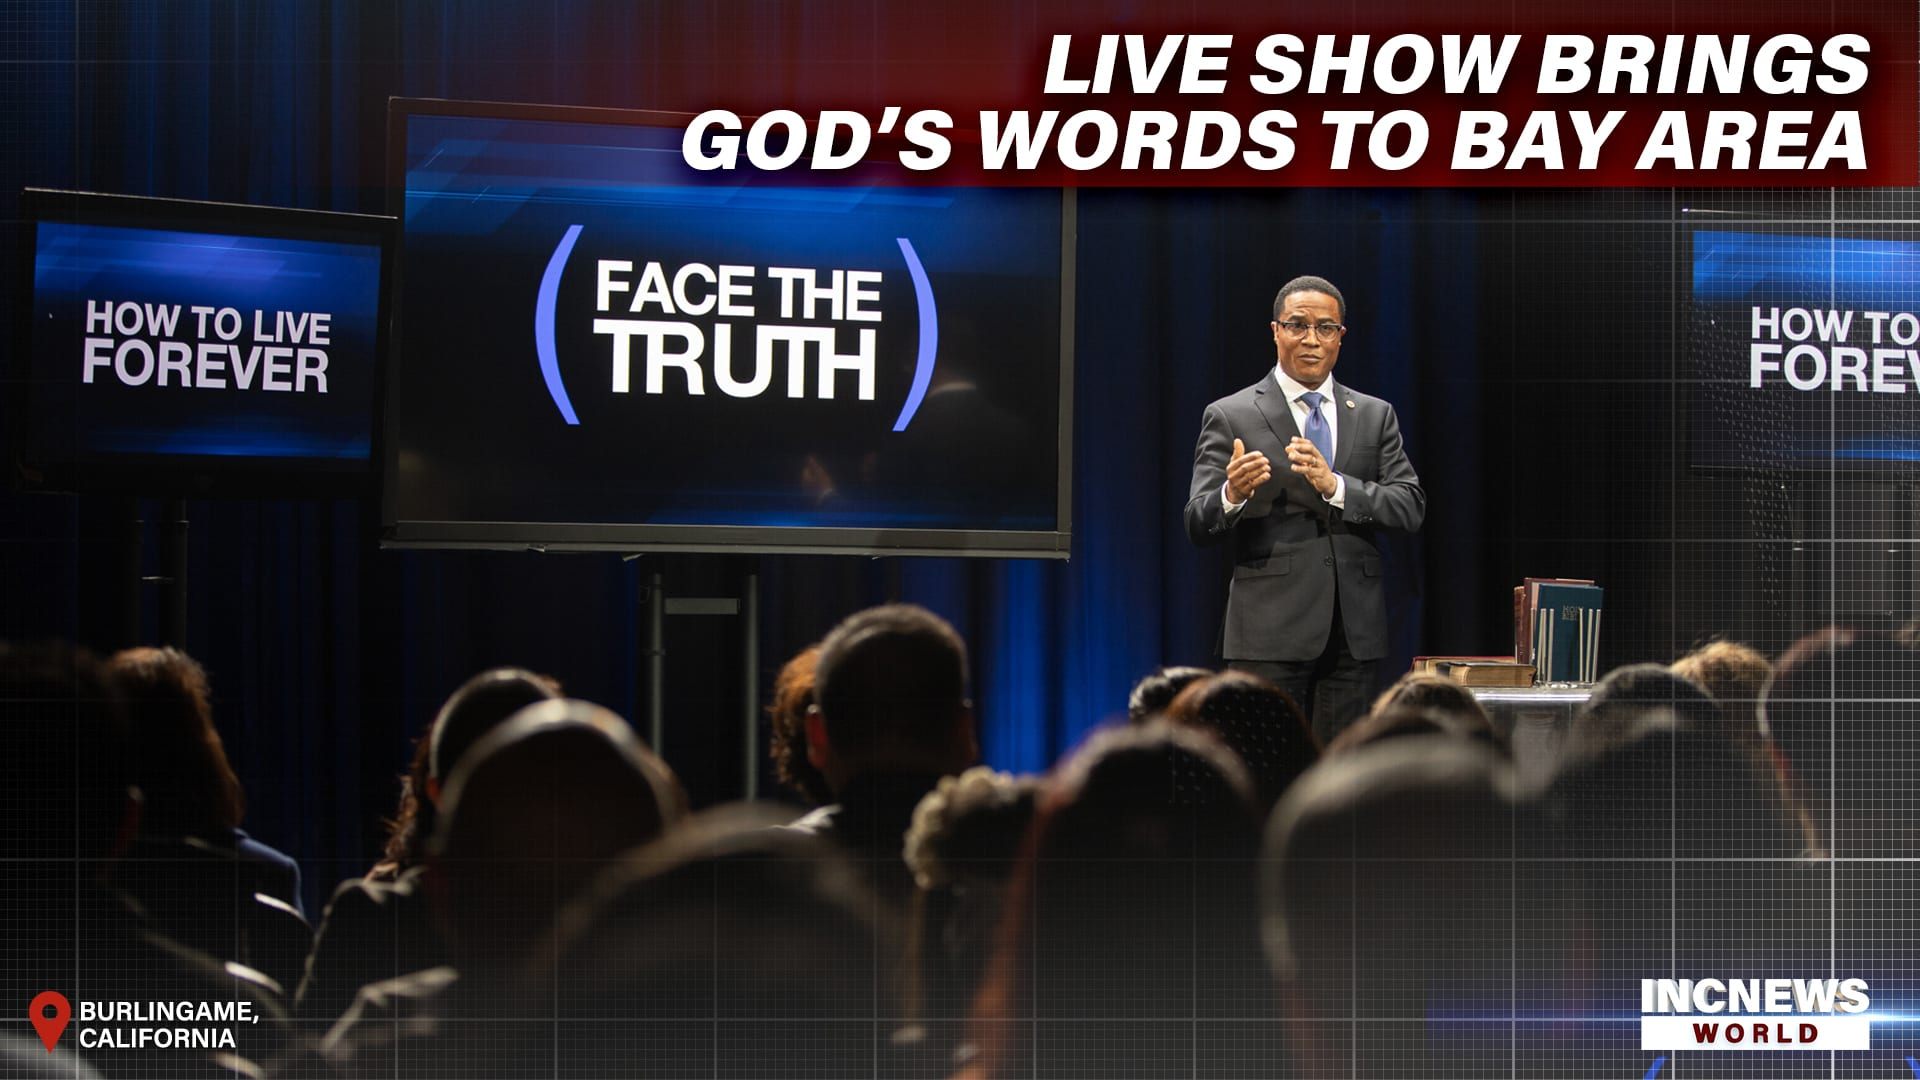 Live Show Brings God's Words to Bay Area